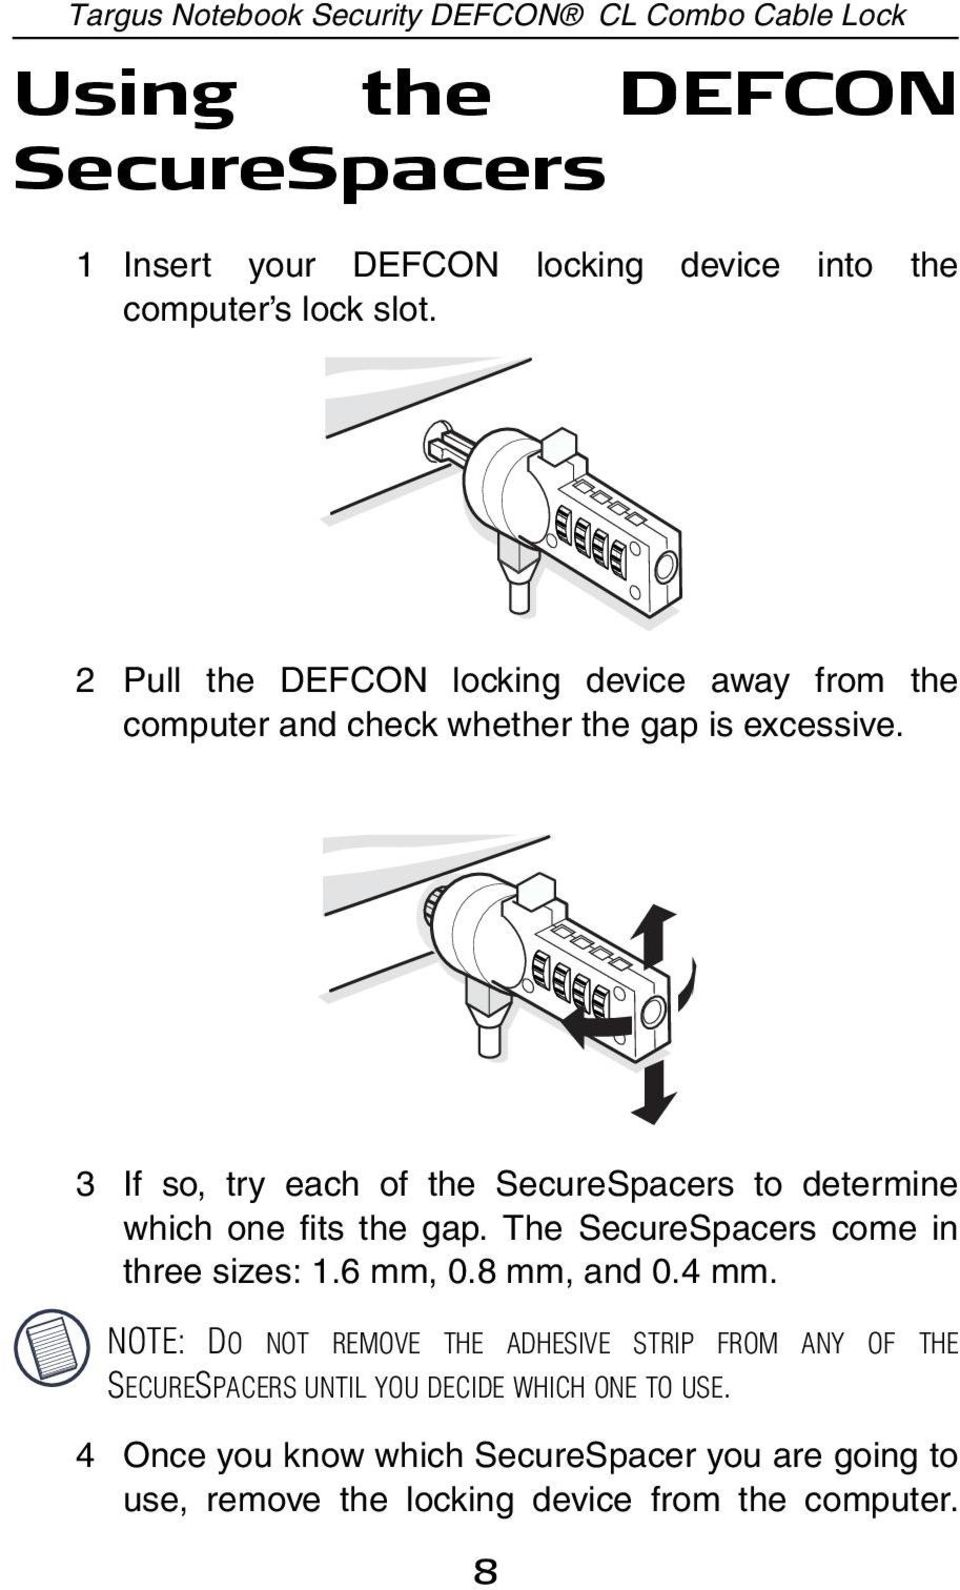 3 If so, try each of the SecureSpacers to determine which one fits the gap. The SecureSpacers come in three sizes: 1.6 mm, 0.